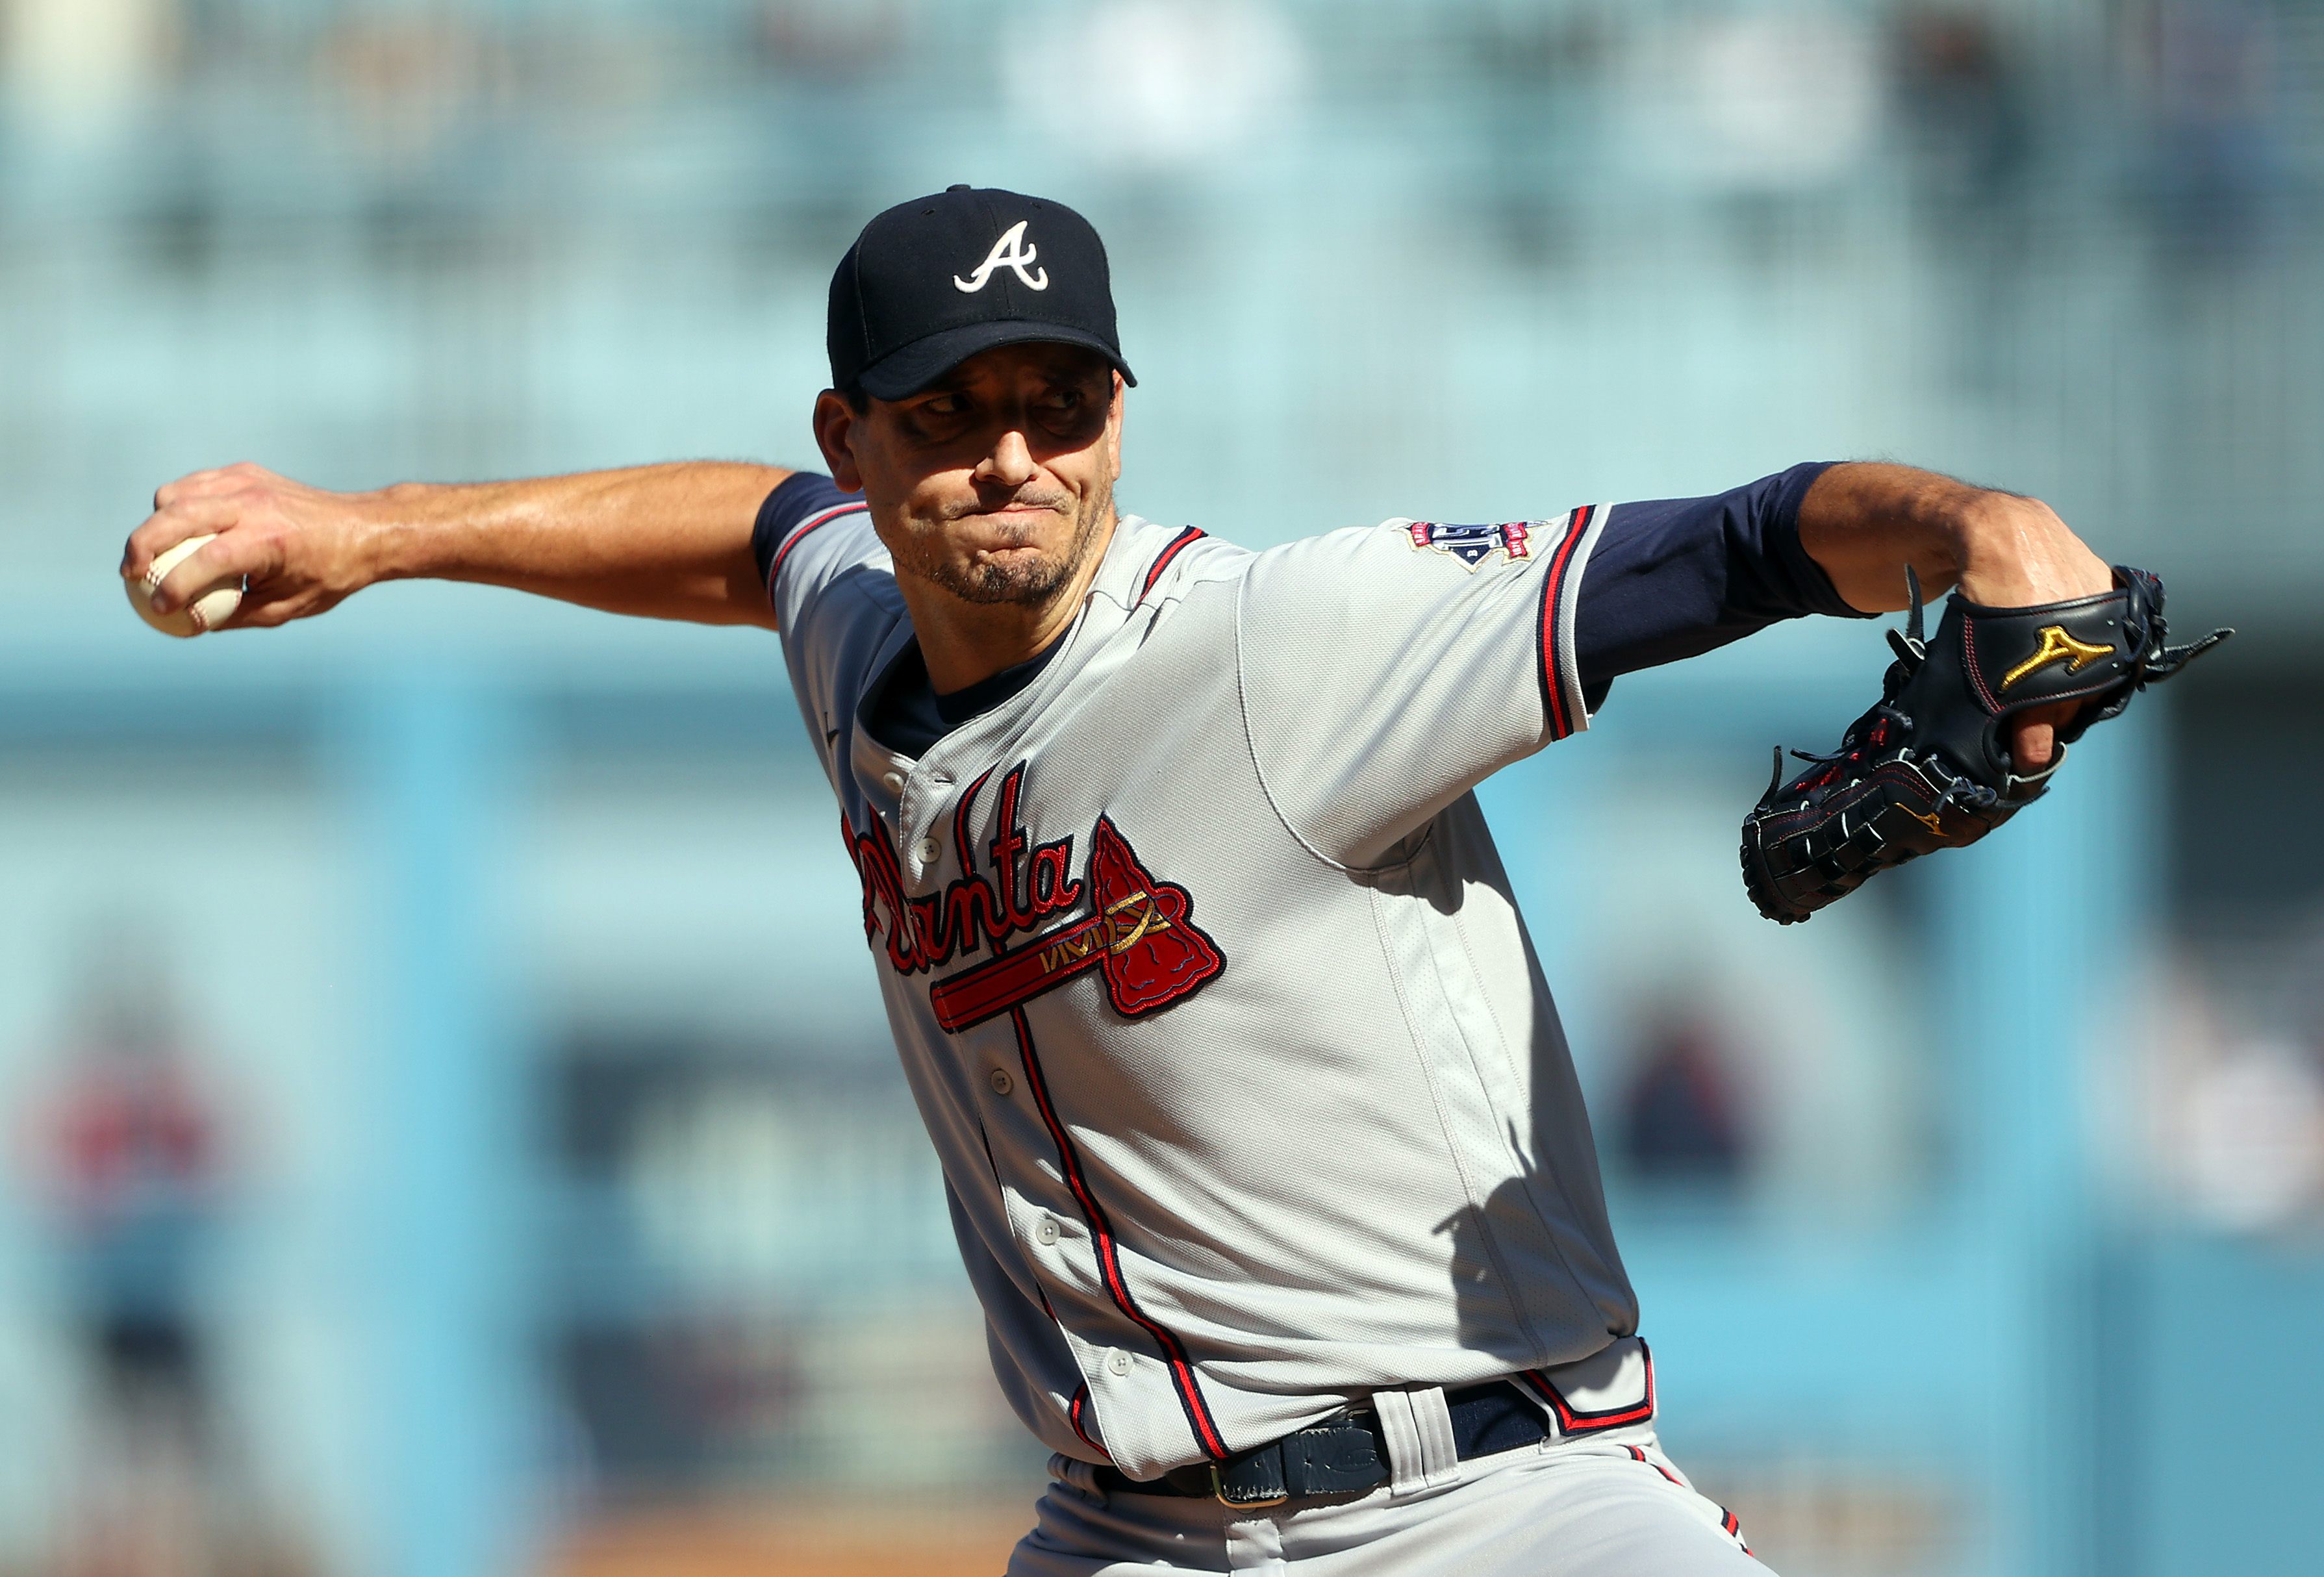 Starting pitcher Charlie Morton #50 of the Atlanta Braves pitches during the first inning of the National League Championship Series against the Los Angeles Dodgers at Dodger Stadium on October 19, 2021 in Los Angeles, California.